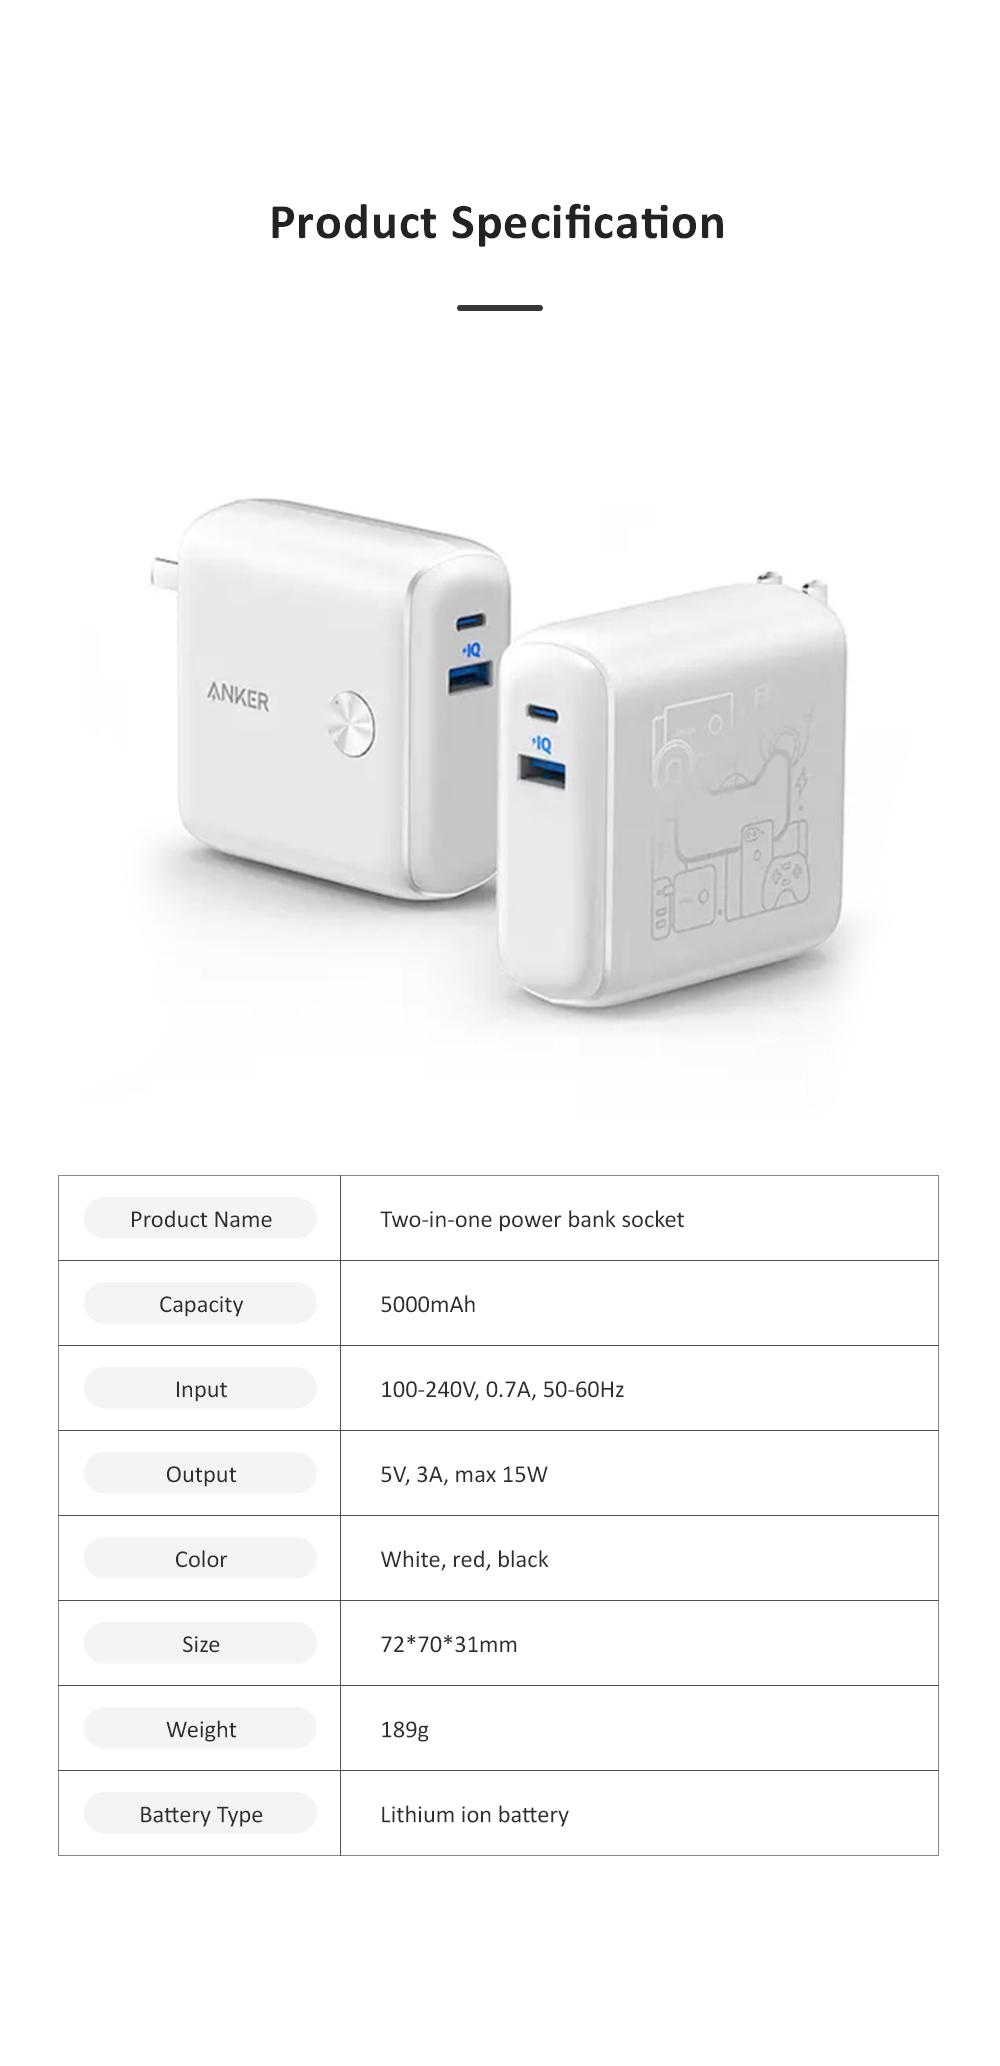 Anker 2 in 1 Power Bank Station Socket for Outdoors Travelling Quick Charge Portable Recharge Switch Power Socket 9